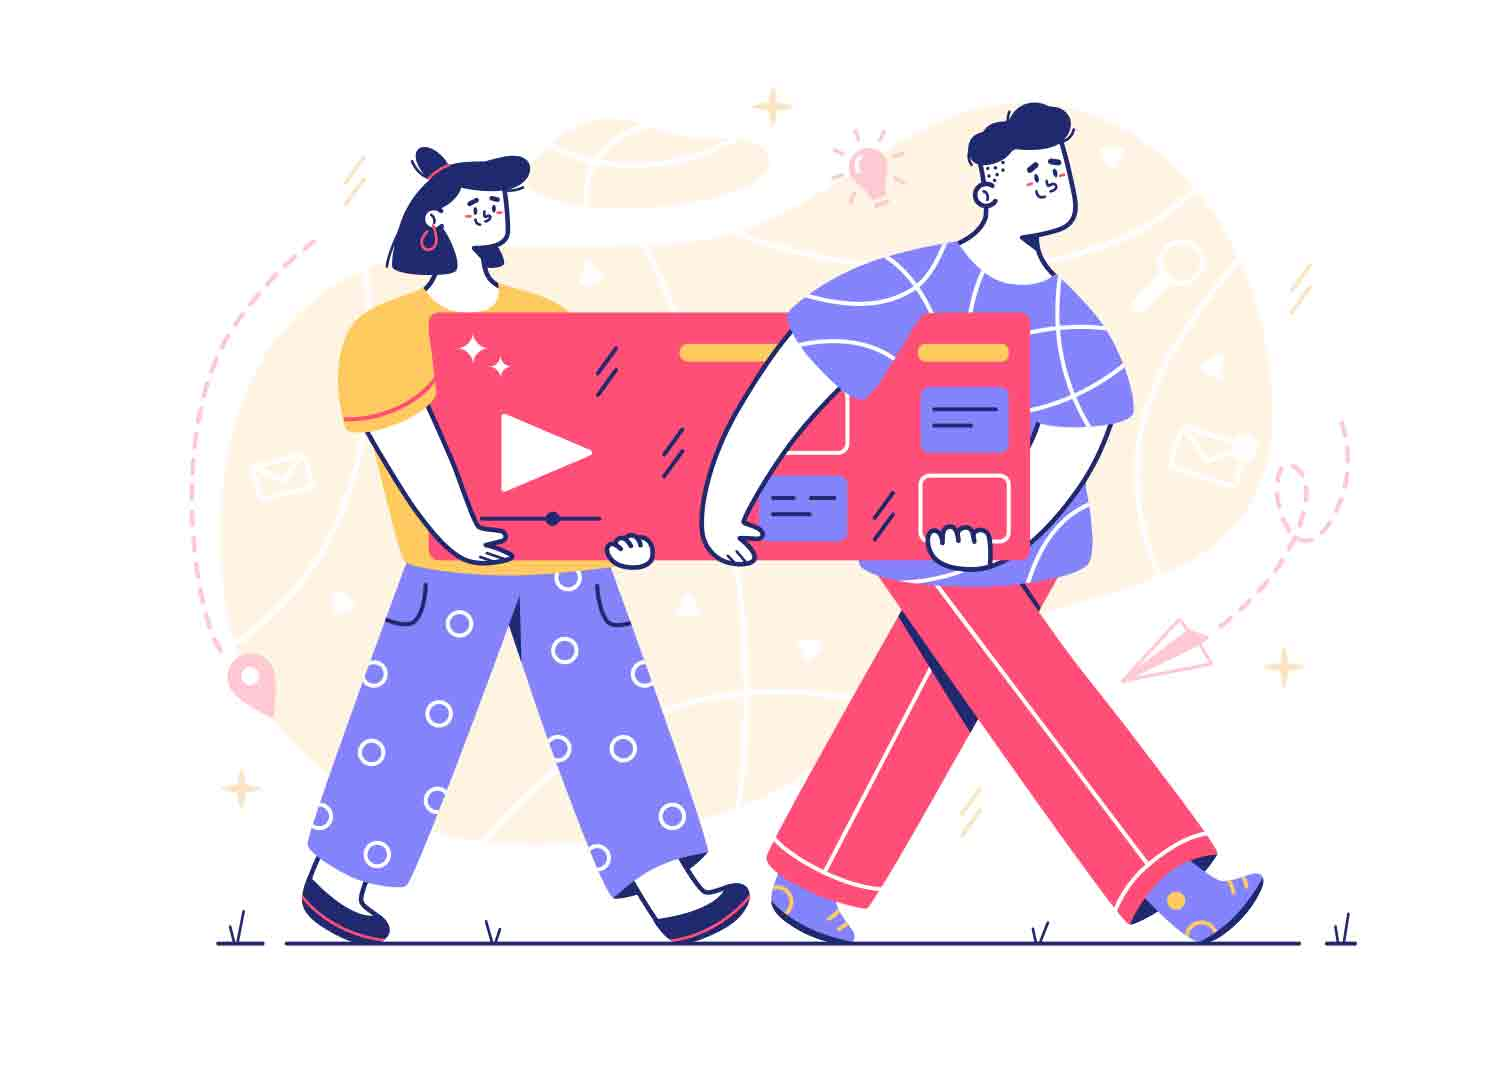 Fun character Illustrations in line style made in limited color pallet. Vector source files.